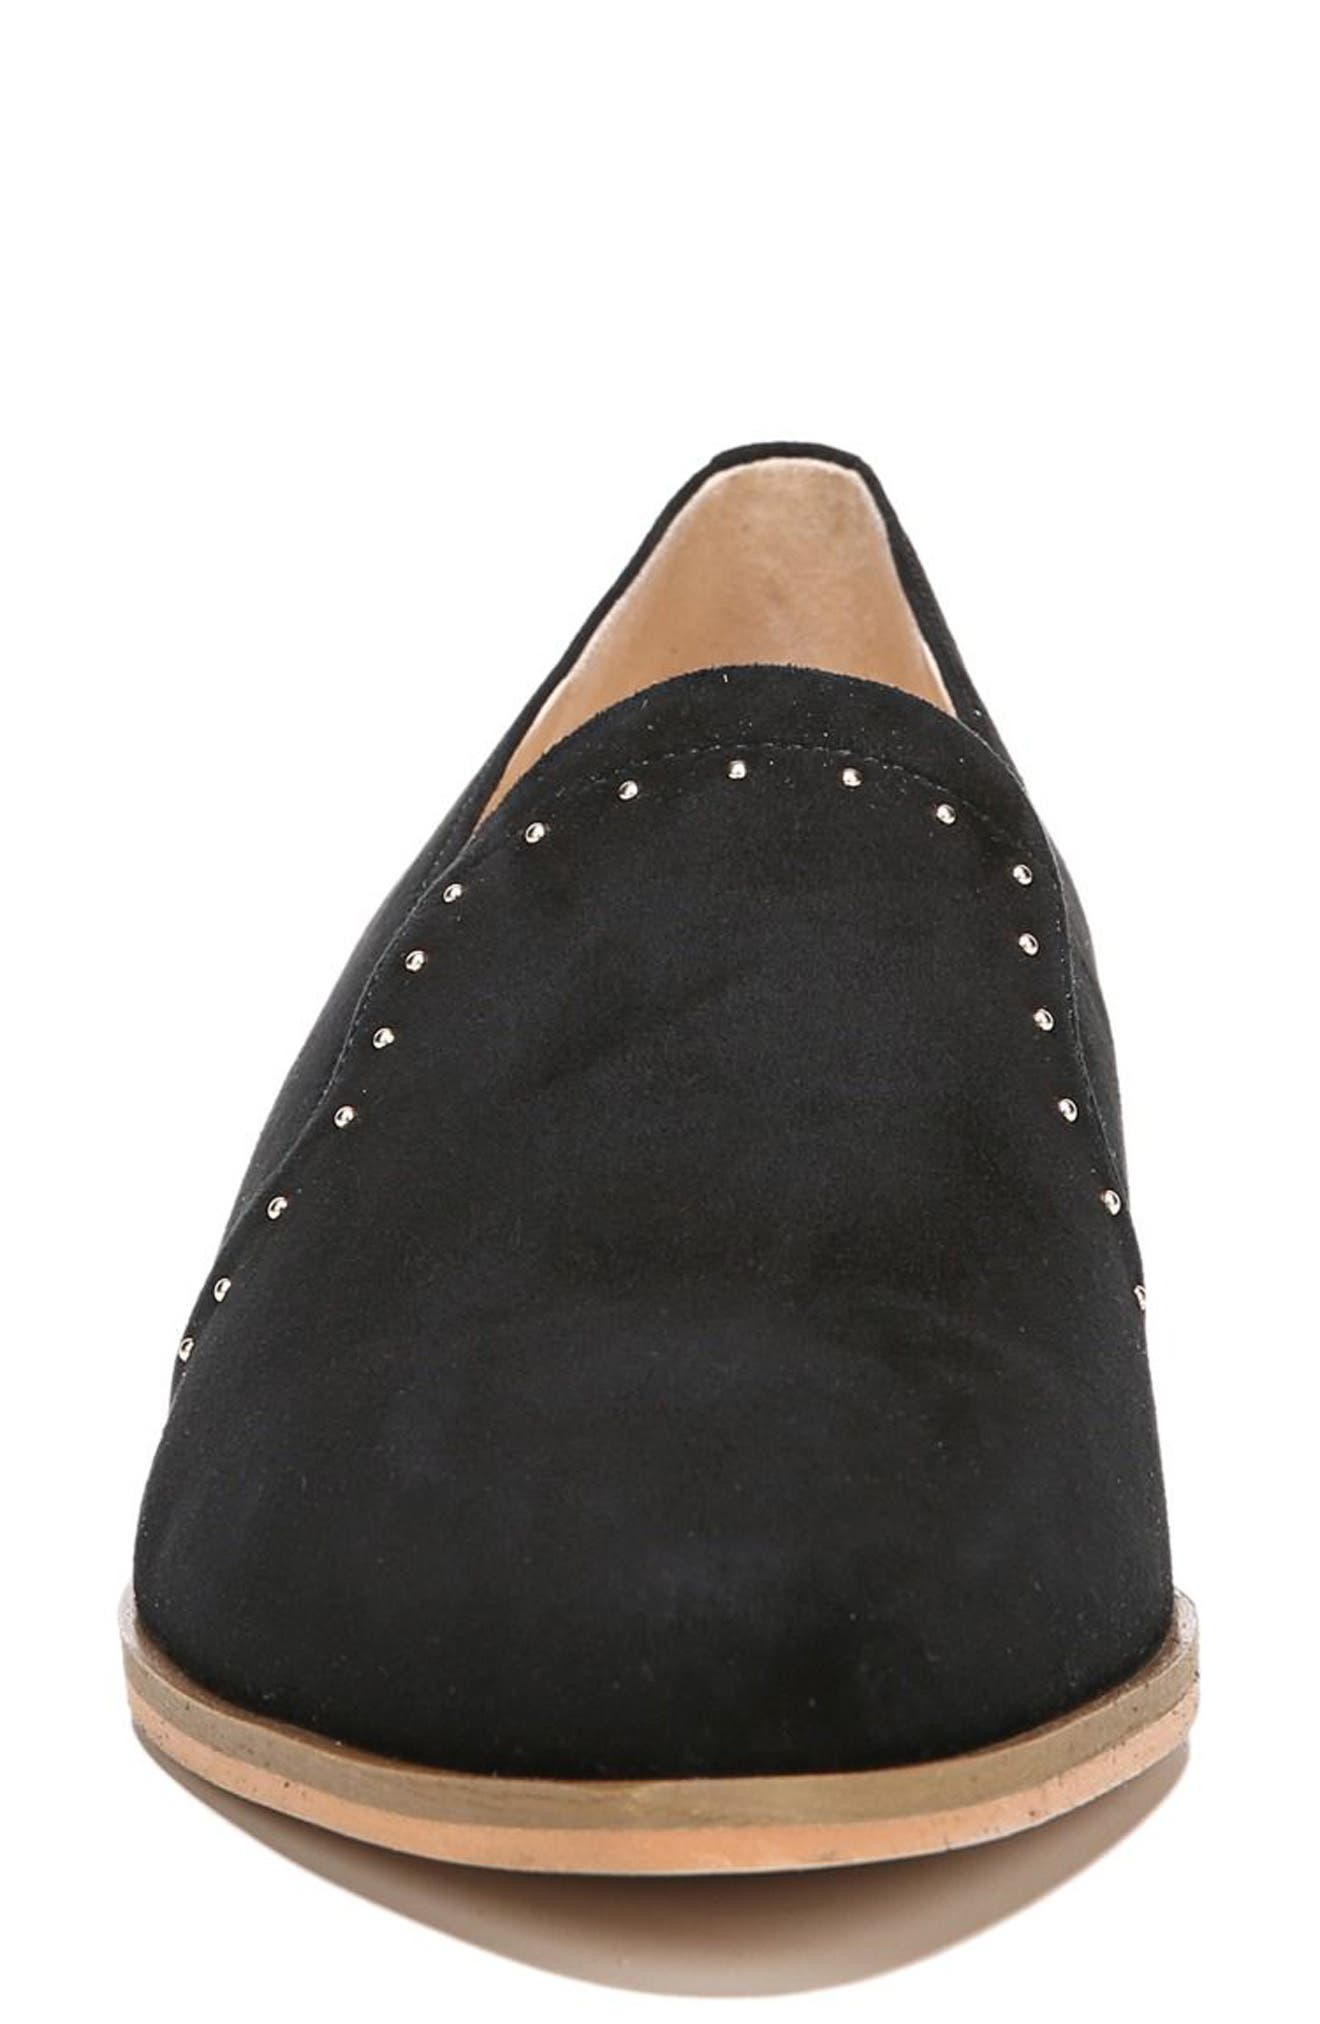 Keane Loafer Wedge,                             Alternate thumbnail 4, color,                             001